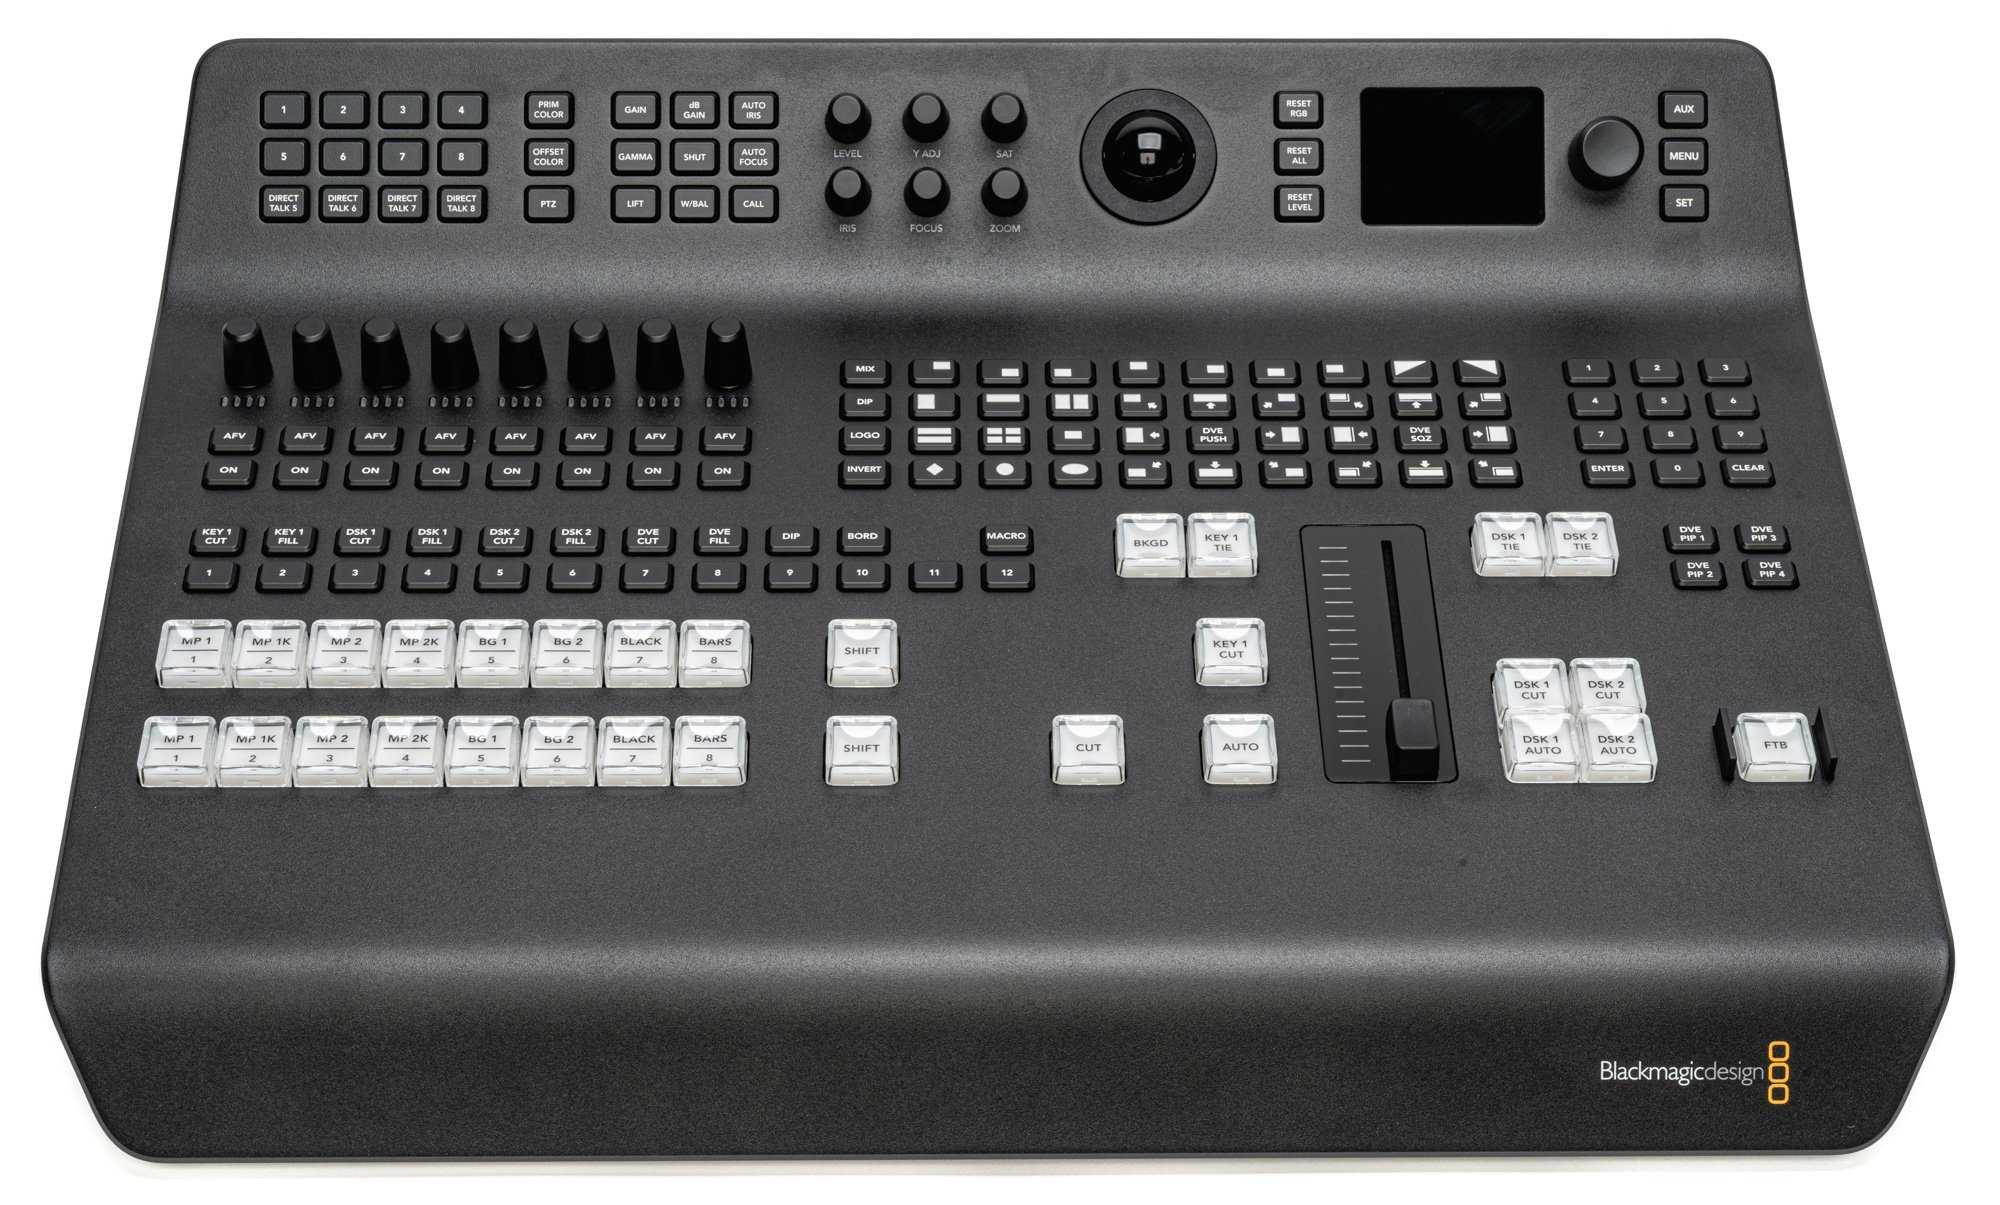 Blackmagic Design Atem Television Studio Pro 4k Bstock Damaged Box Missing Sd Card With Software And Manual